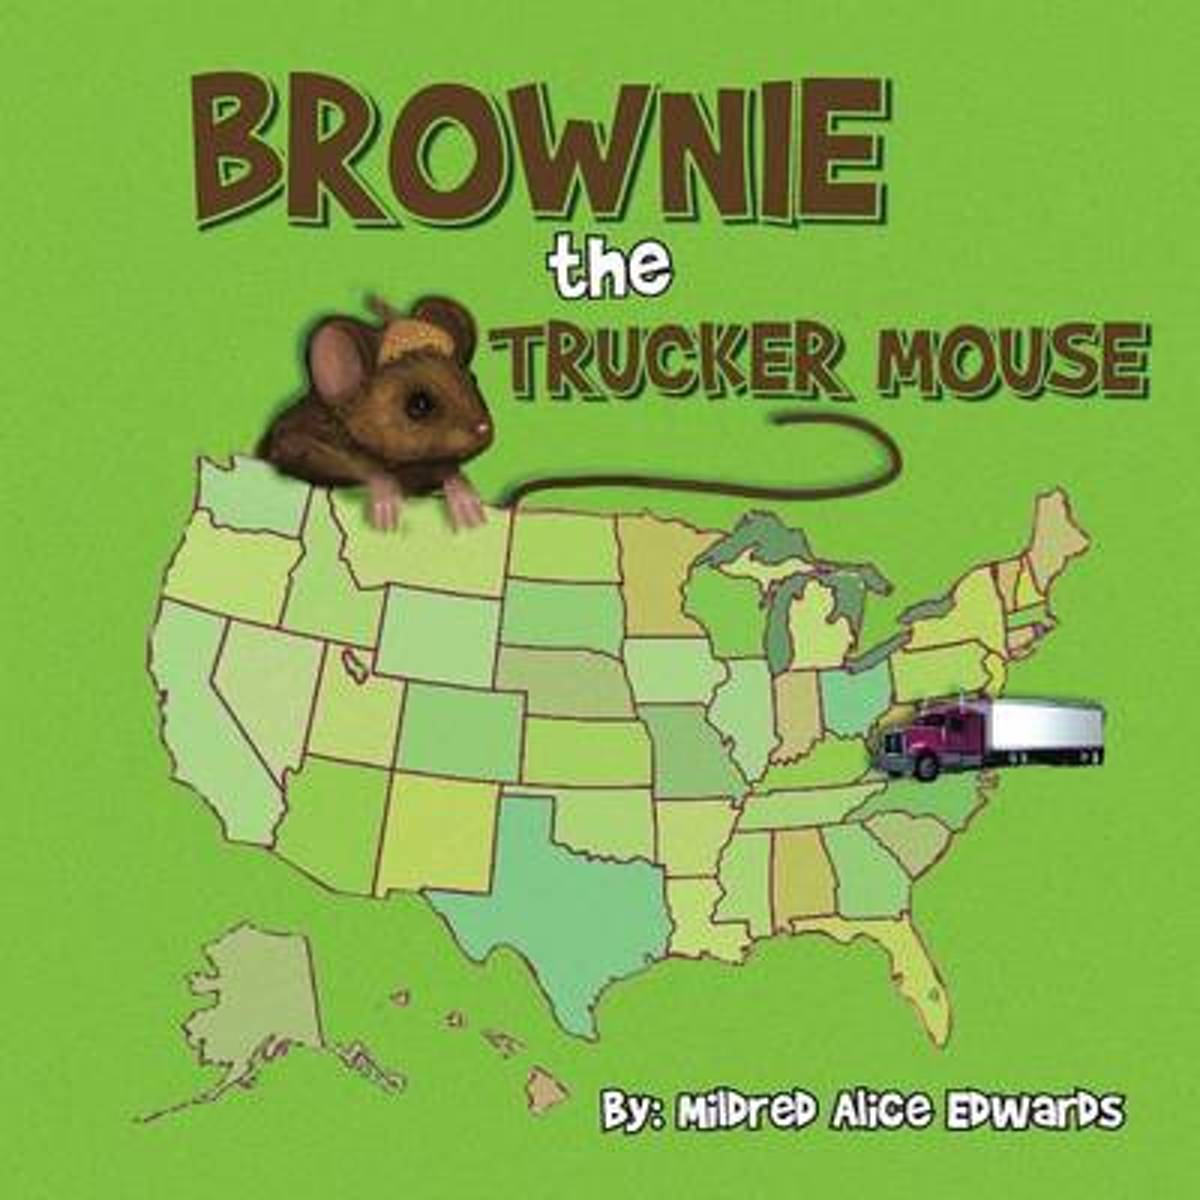 Brownie the Trucker Mouse